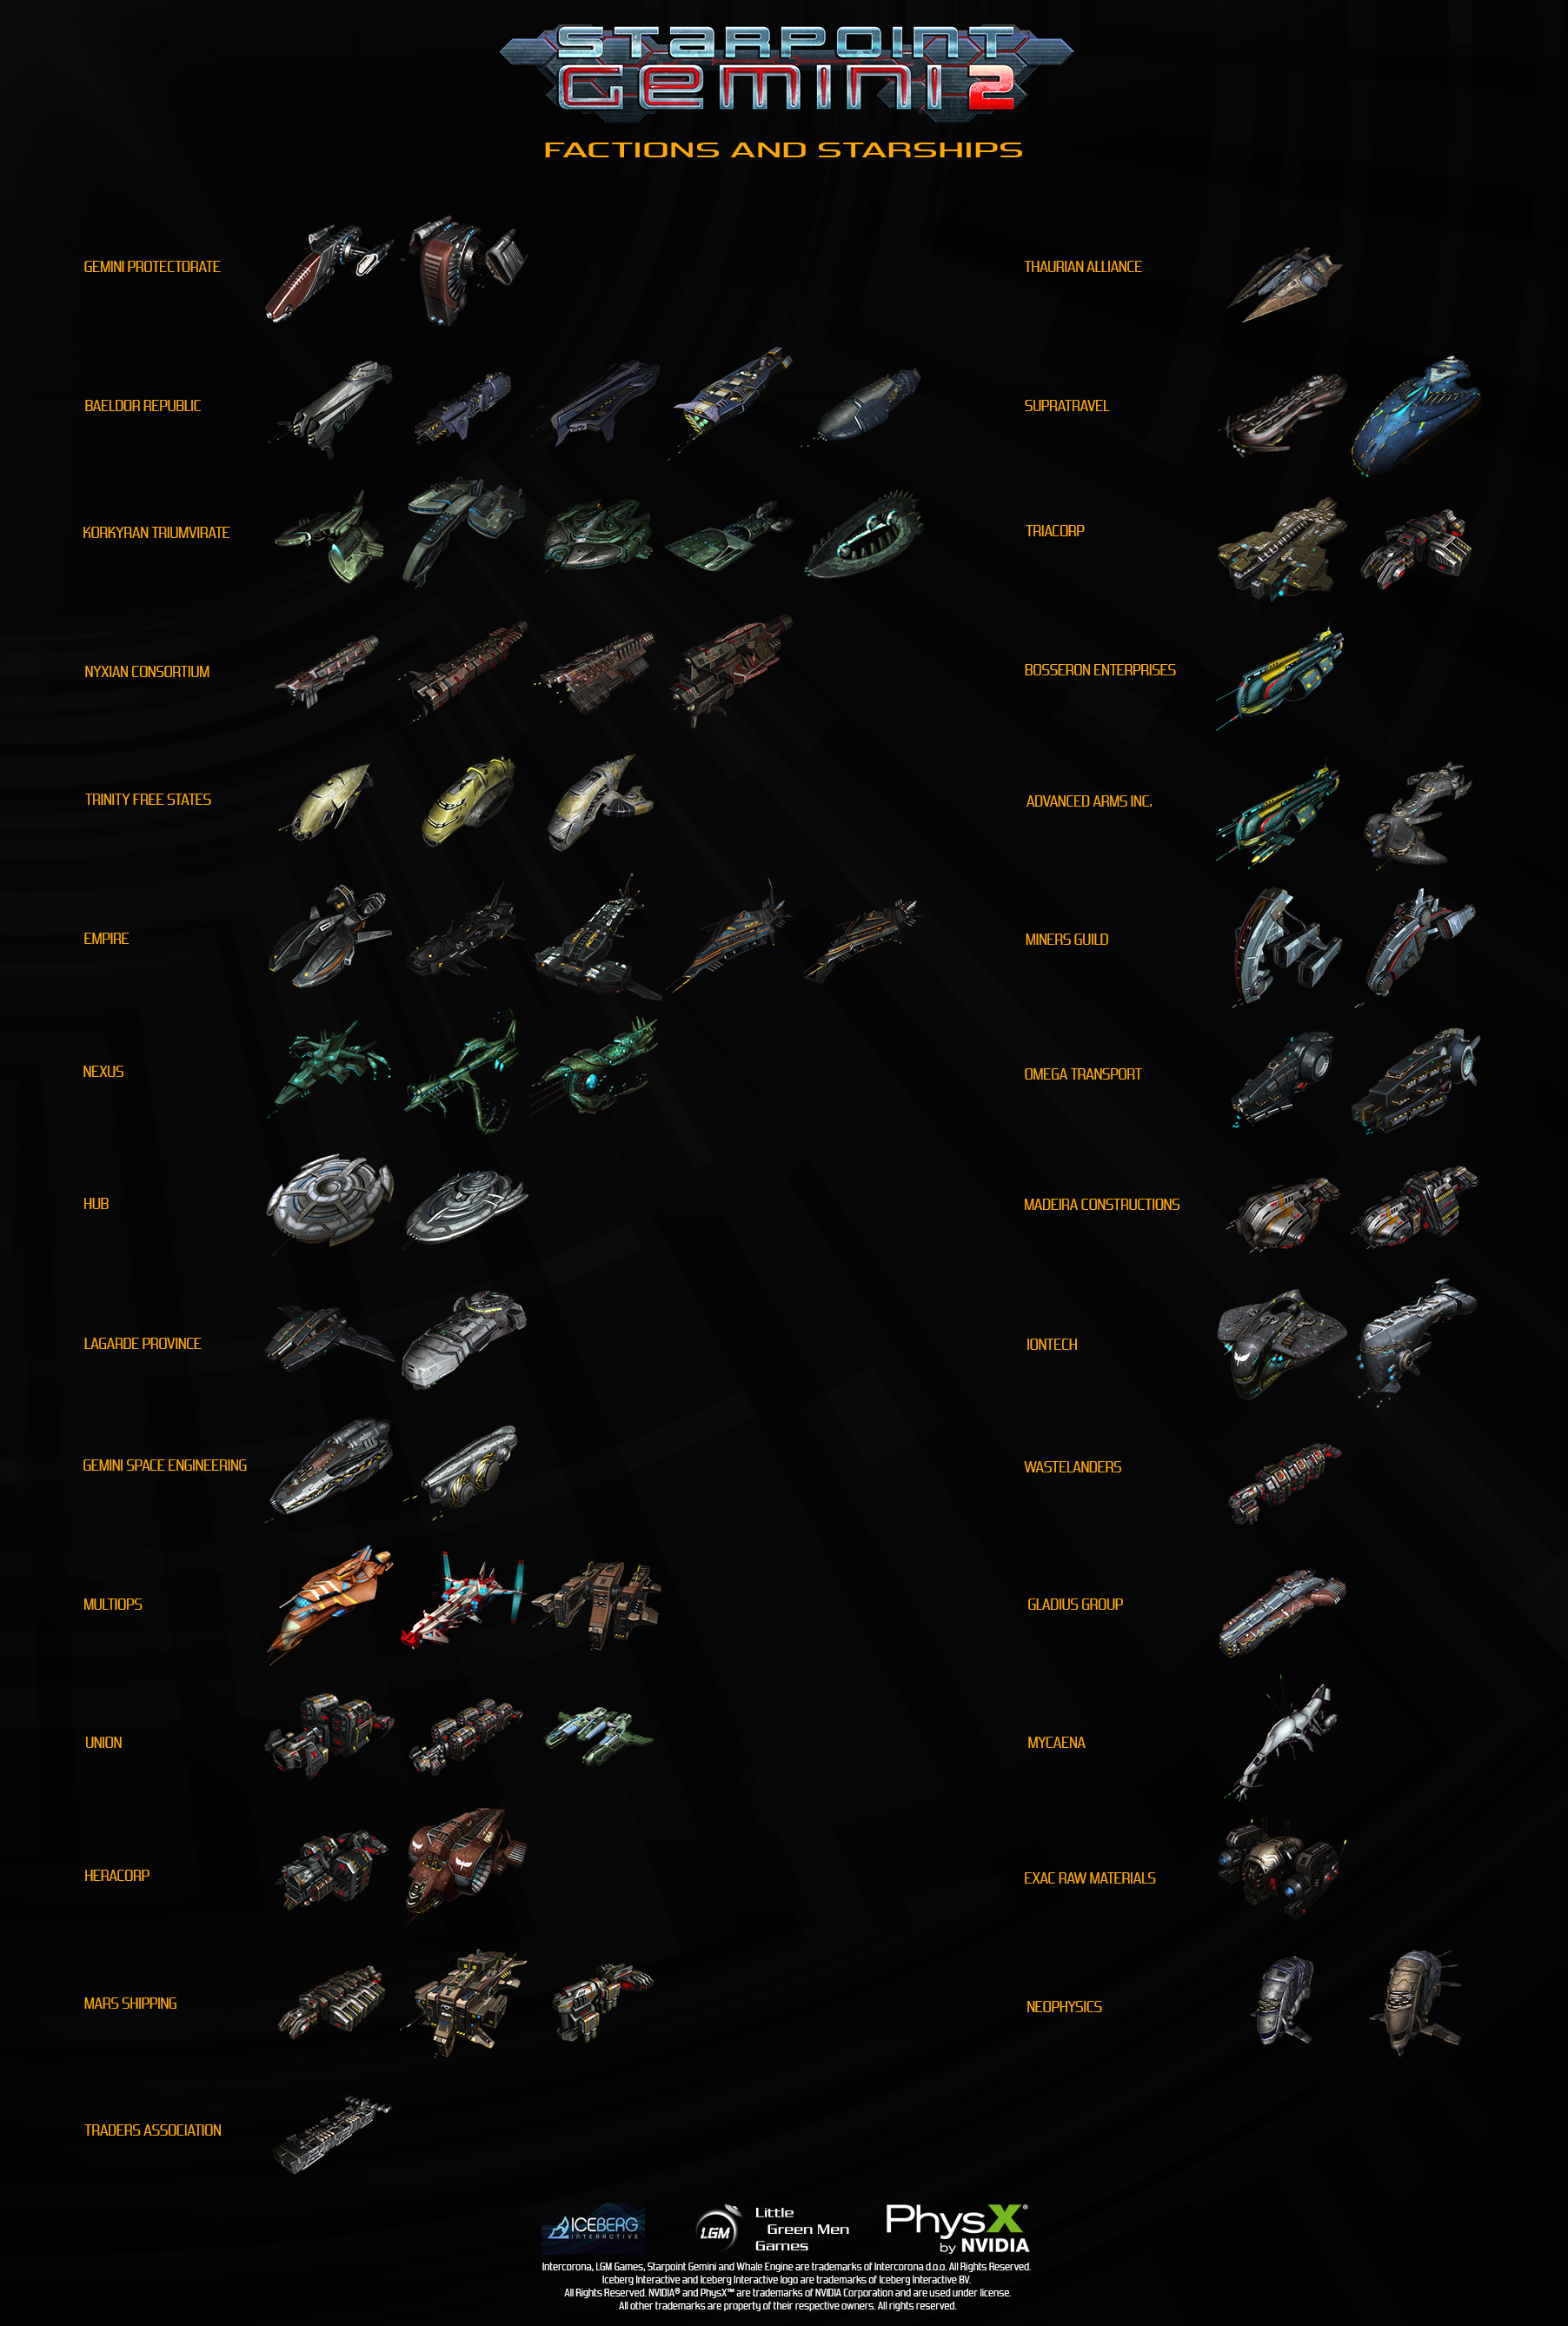 Image 1 factionsandshipsg starpoint gemini 2 wiki fandom 1 factionsandshipsg malvernweather Image collections